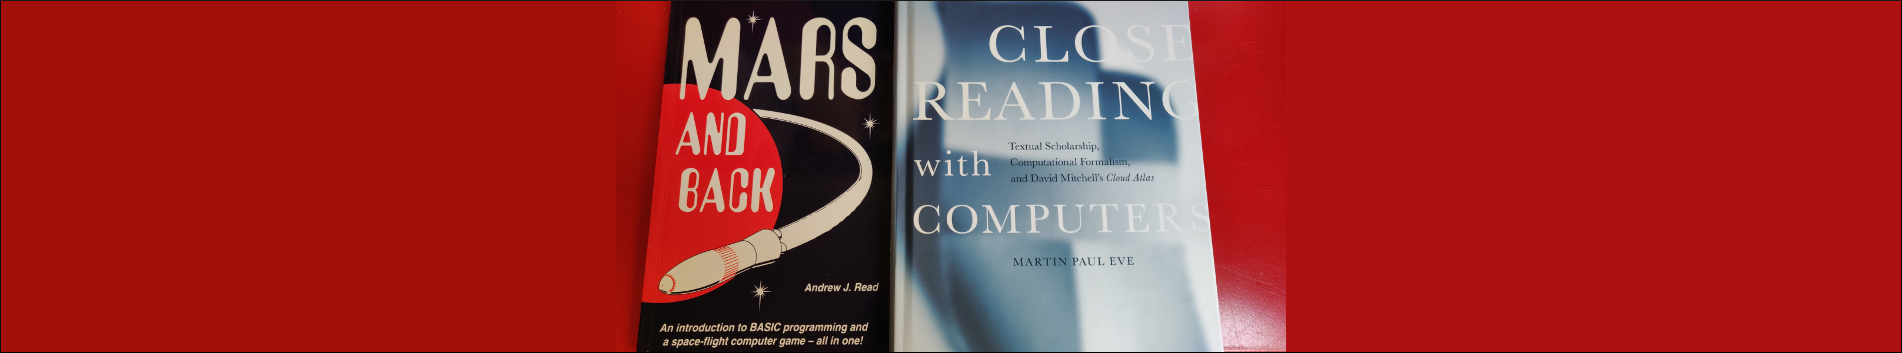 From Mars and Back to Close Reading with Computers feature image